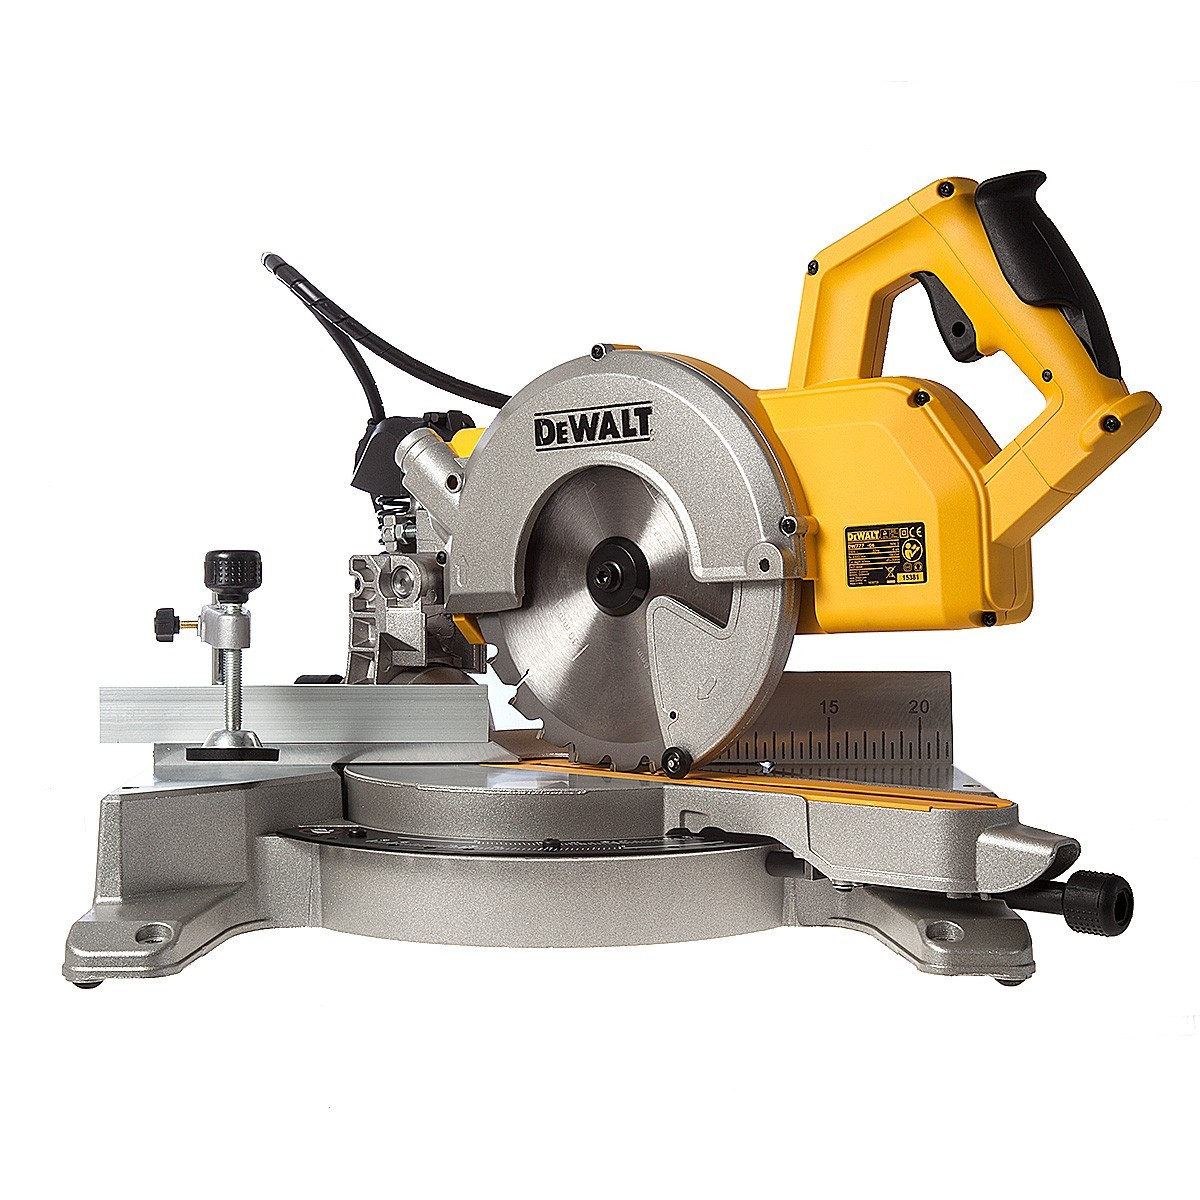 DeWalt DW777 216mm Compound Slide Mitre Saw 110V